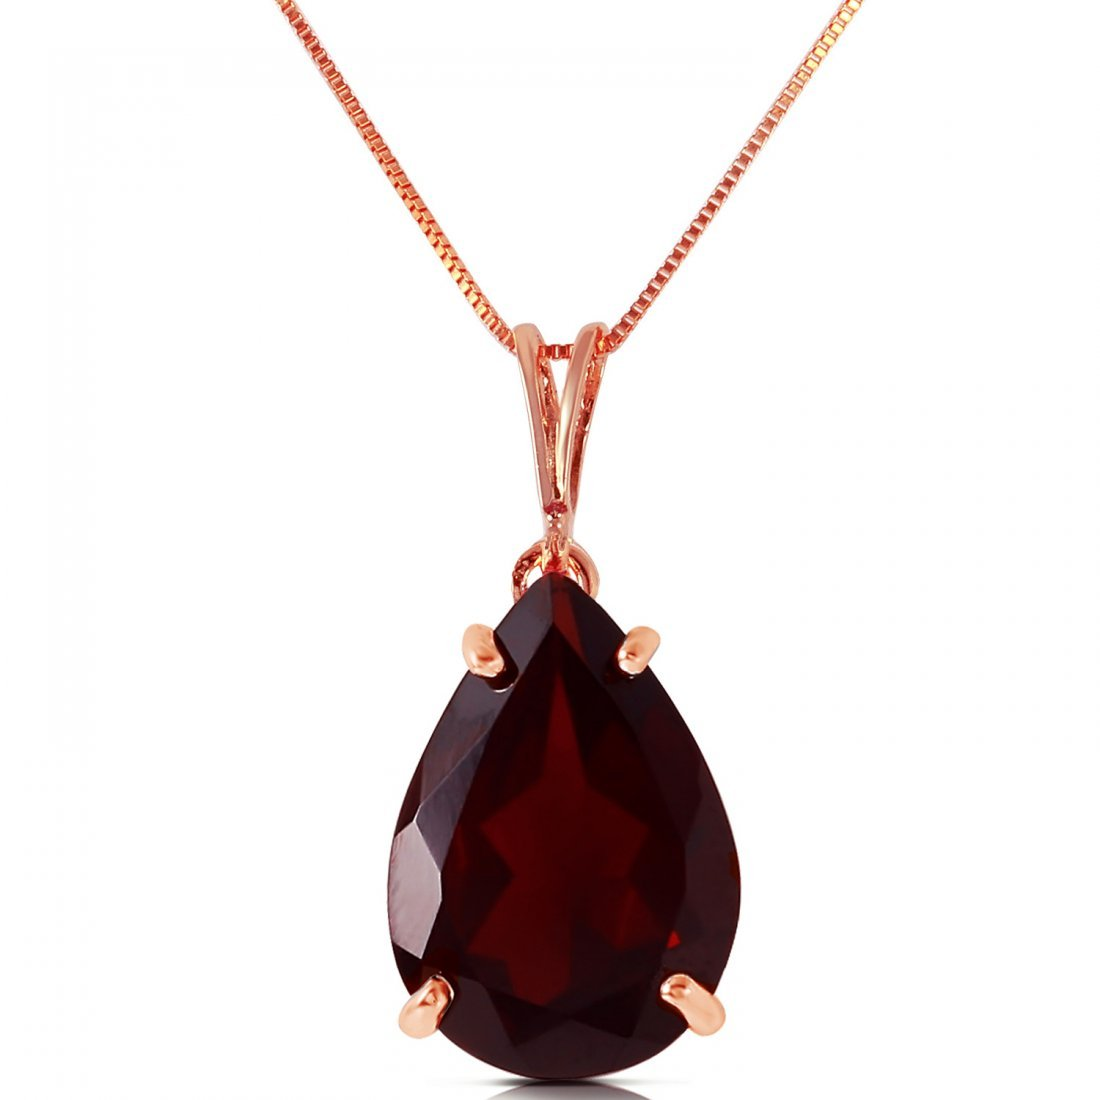 Genuine 5 ctw Garnet Necklace Jewelry 14KT Rose Gold -